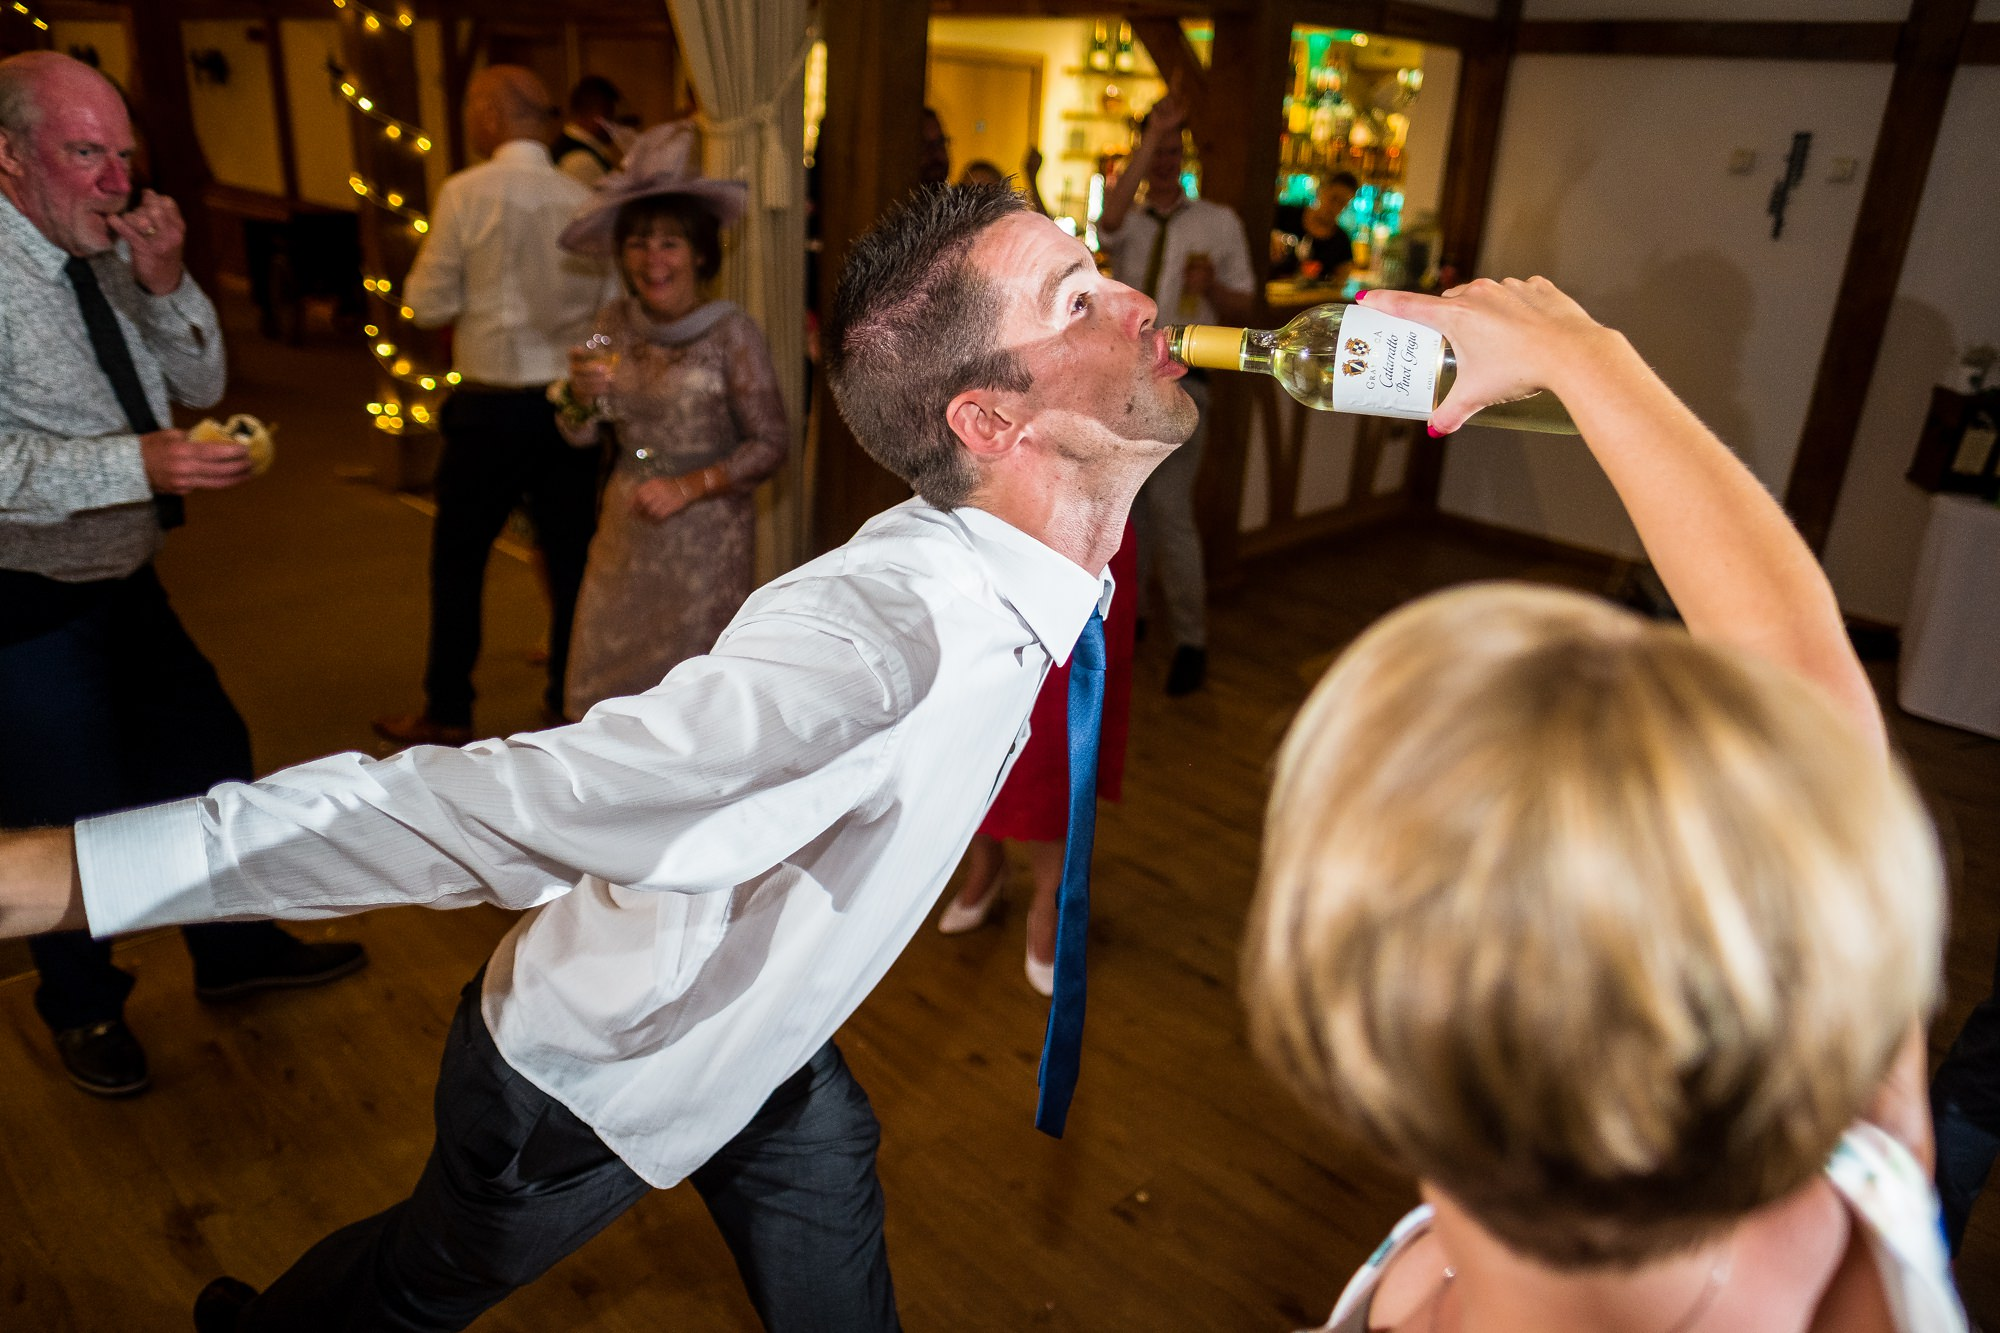 guest pouring wine in guests mouth